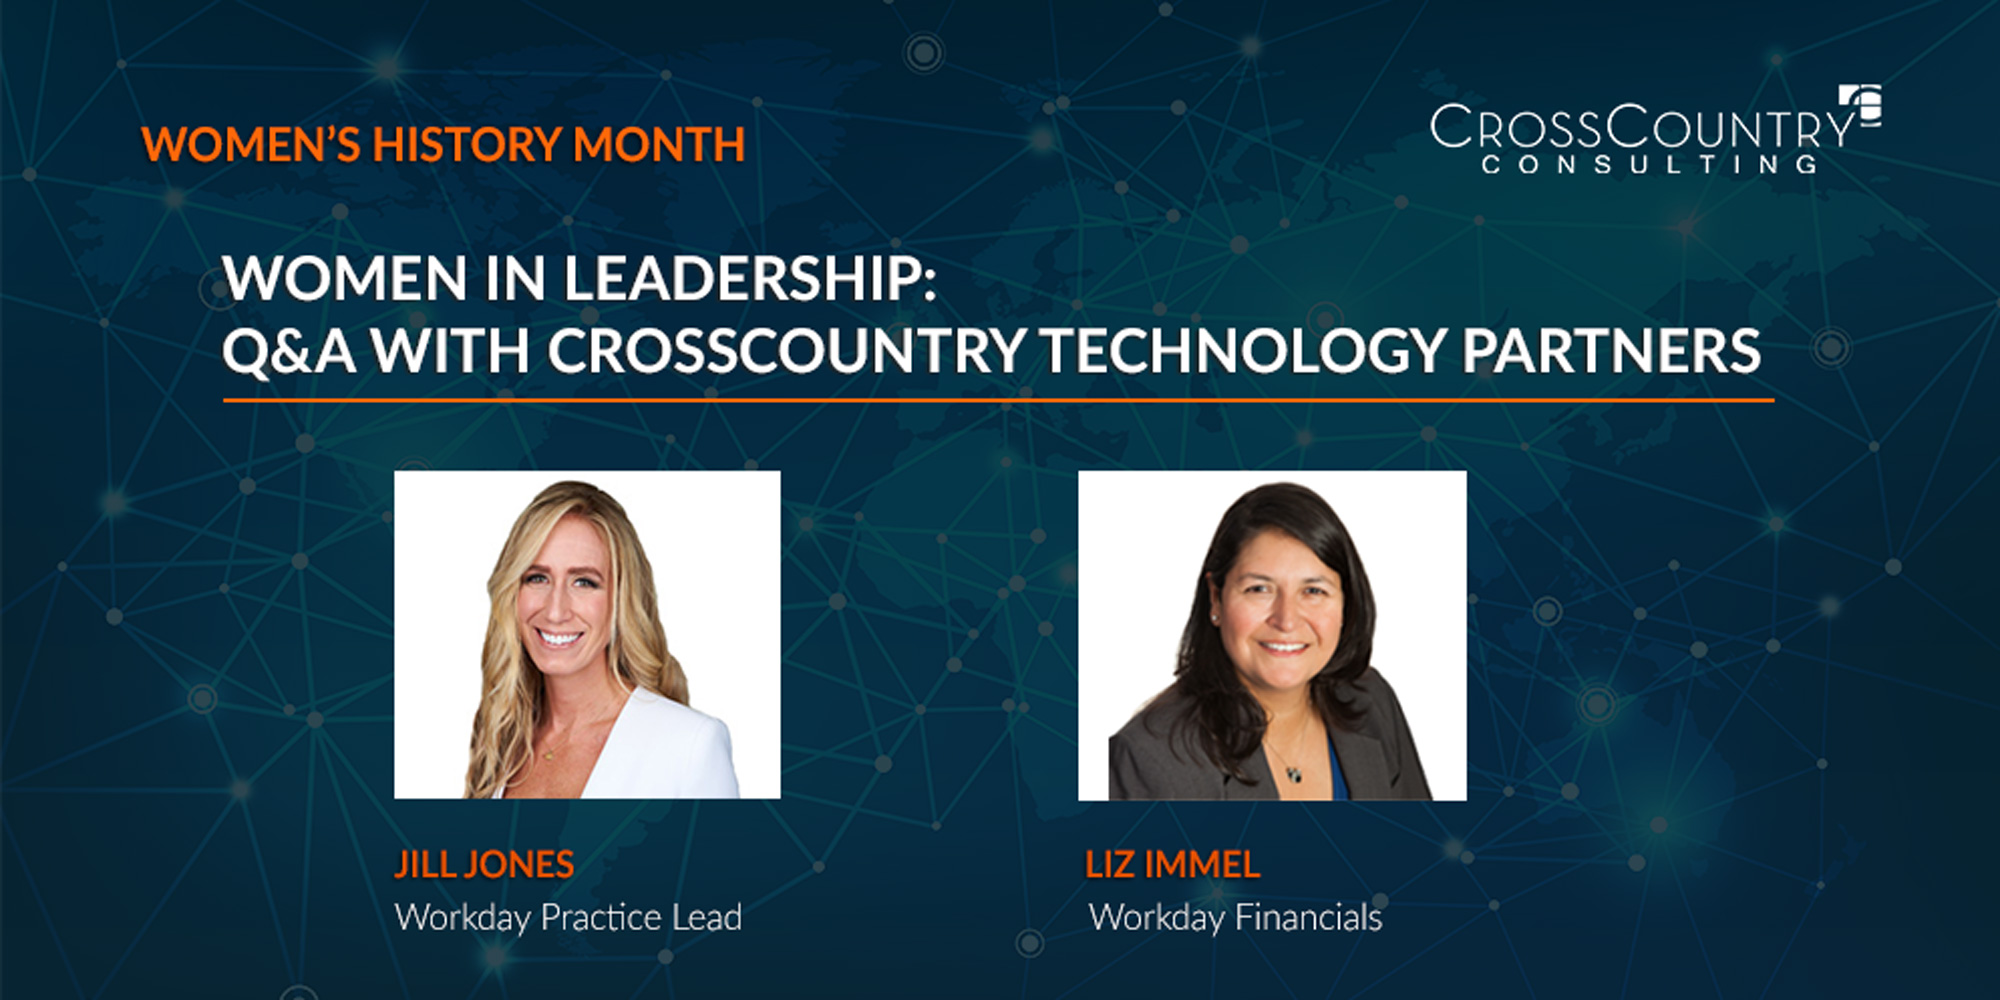 Women in Leadership: Q&A with CrossCountry Technology Partners